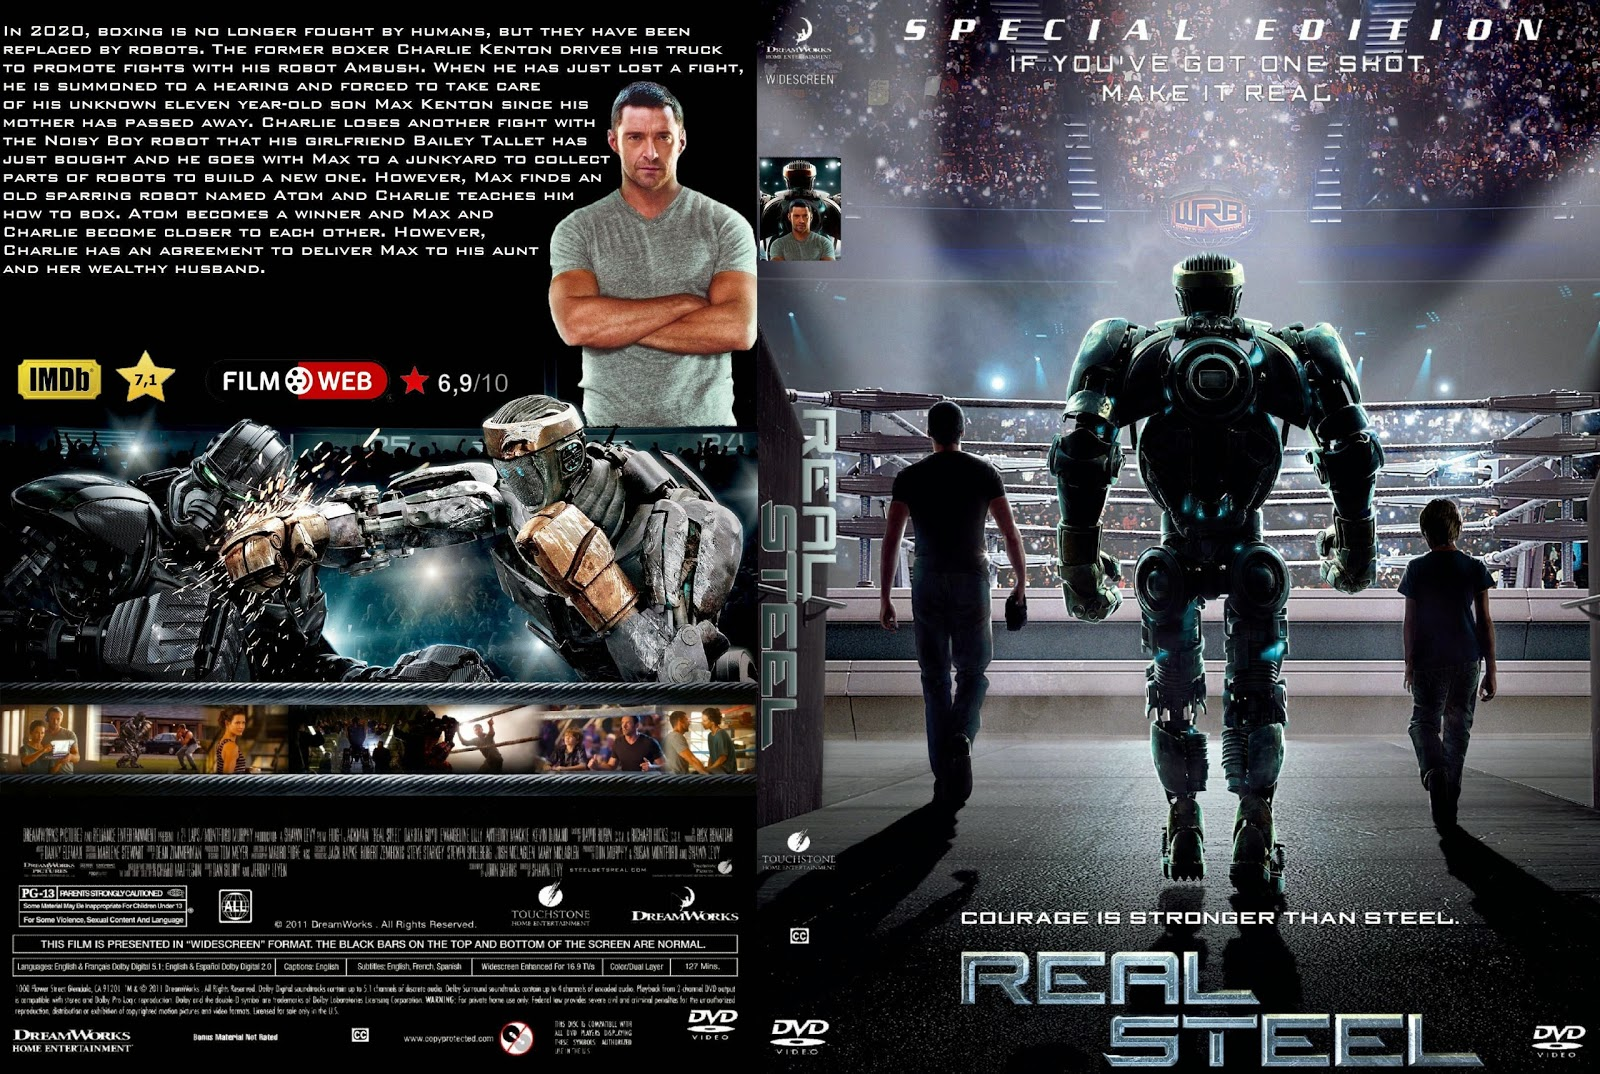 Capa DVD Real Steel Special Edition